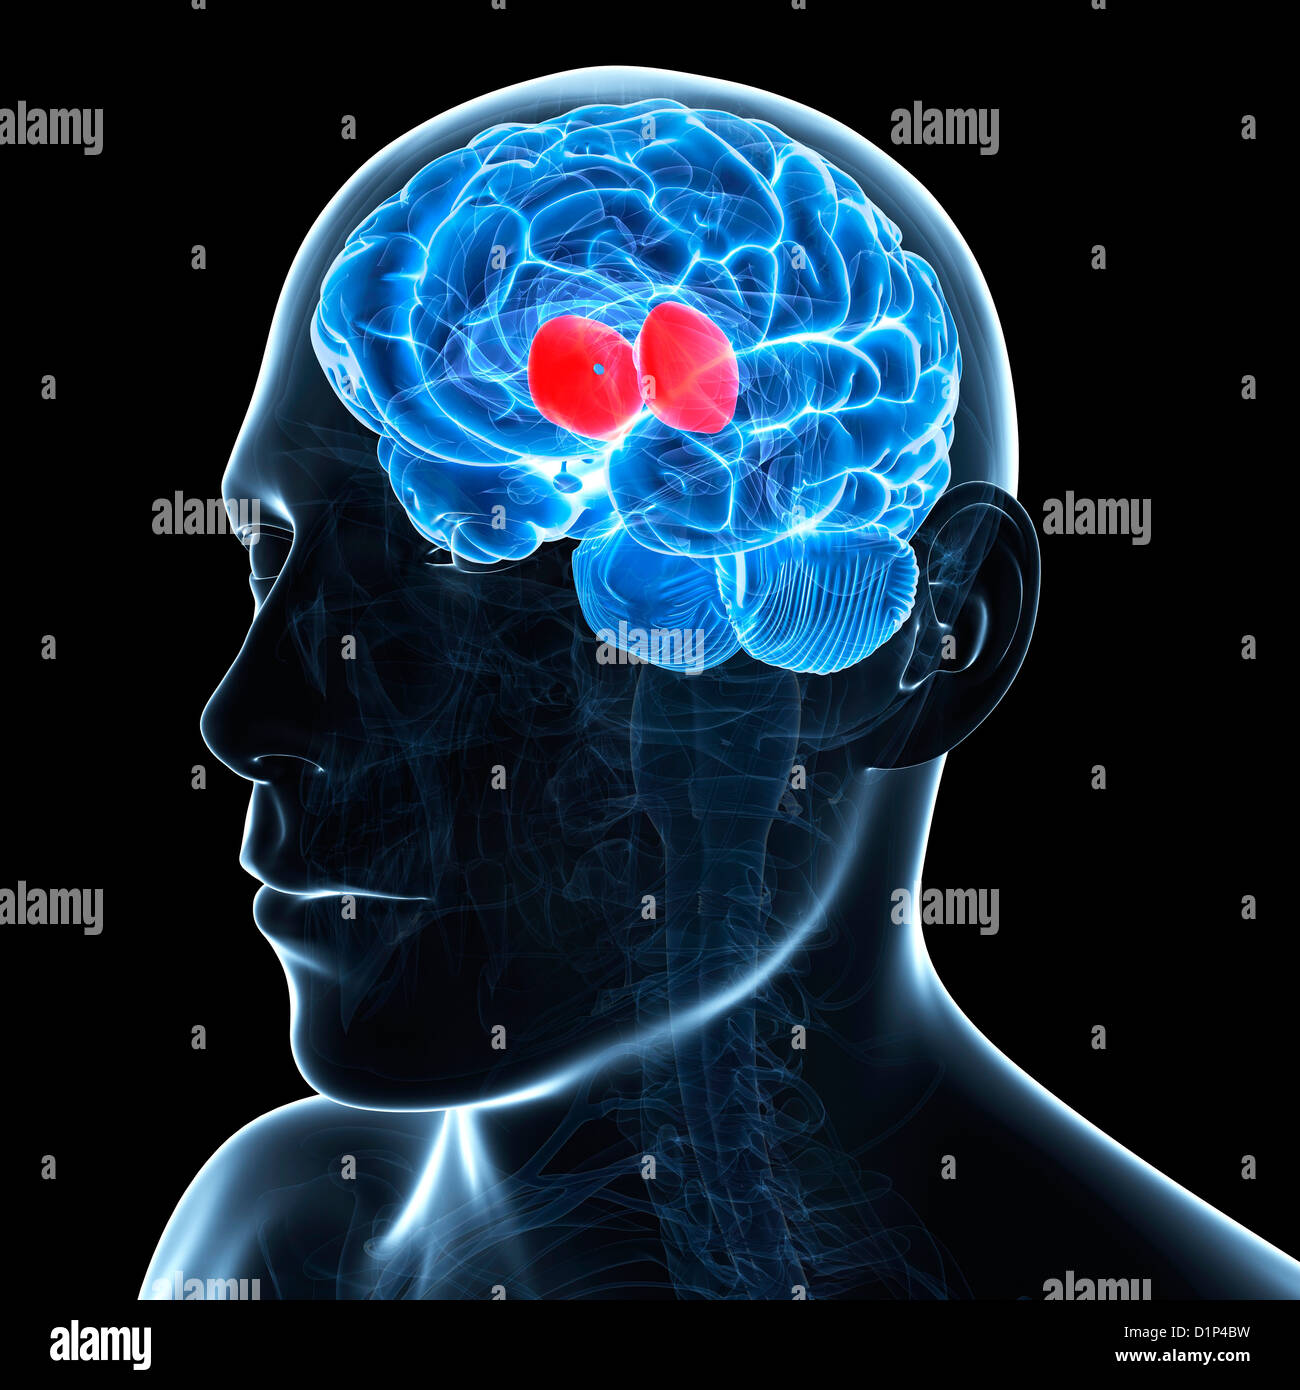 Thalamus, artwork - Stock Image